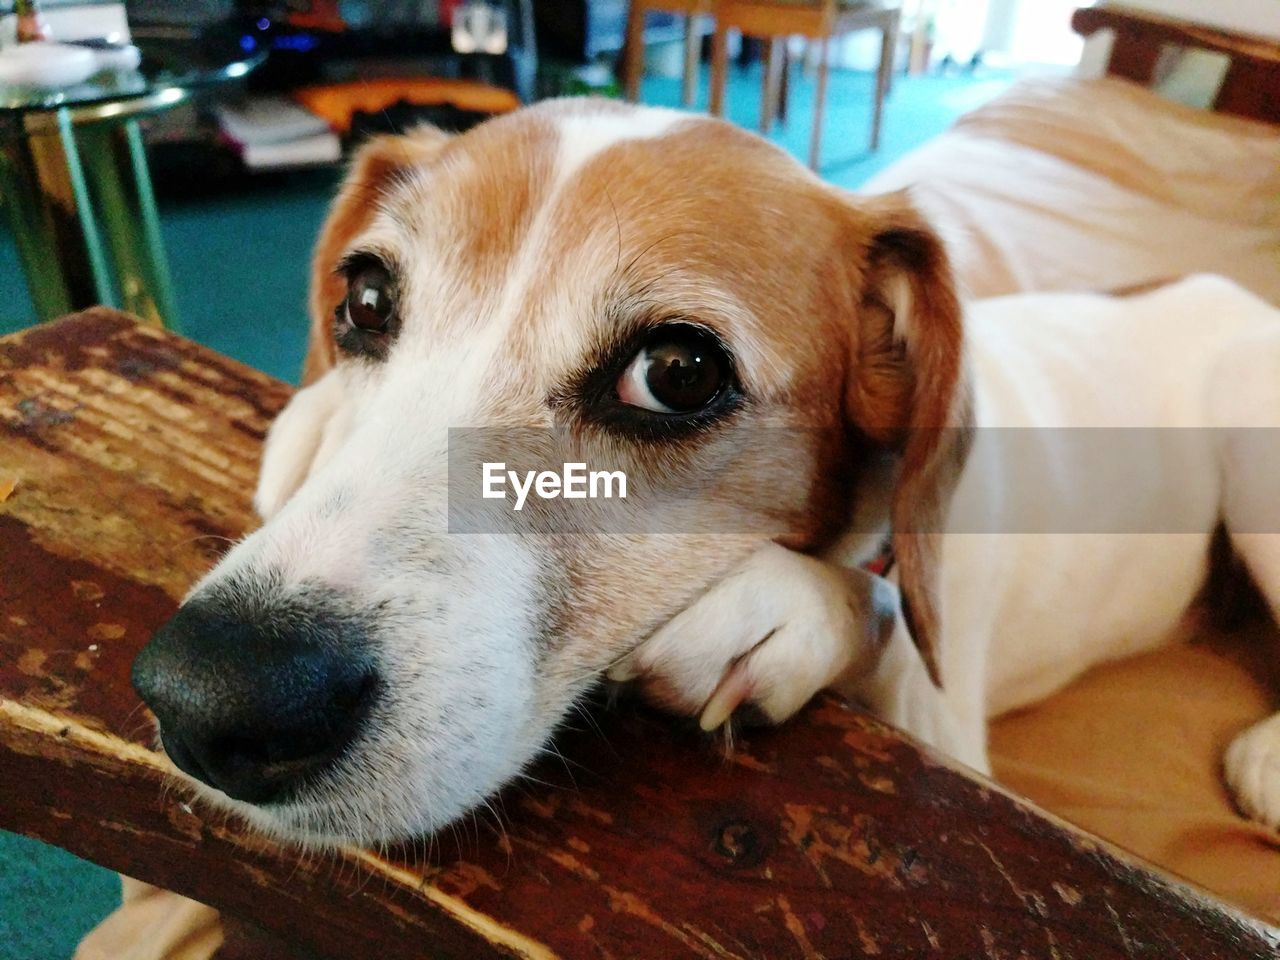 canine, dog, one animal, domestic, pets, animal themes, domestic animals, animal, mammal, relaxation, indoors, close-up, vertebrate, looking, looking away, focus on foreground, animal body part, animal head, no people, wood - material, jack russell terrier